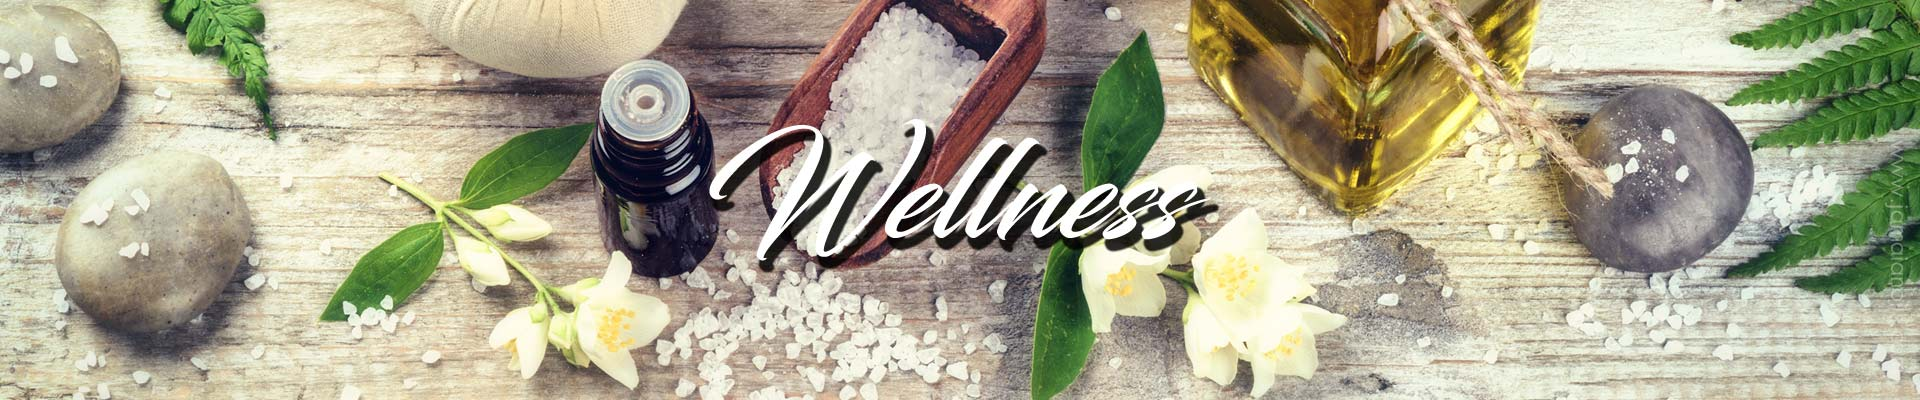 wellness-category-at-jamaicanoils.jpg